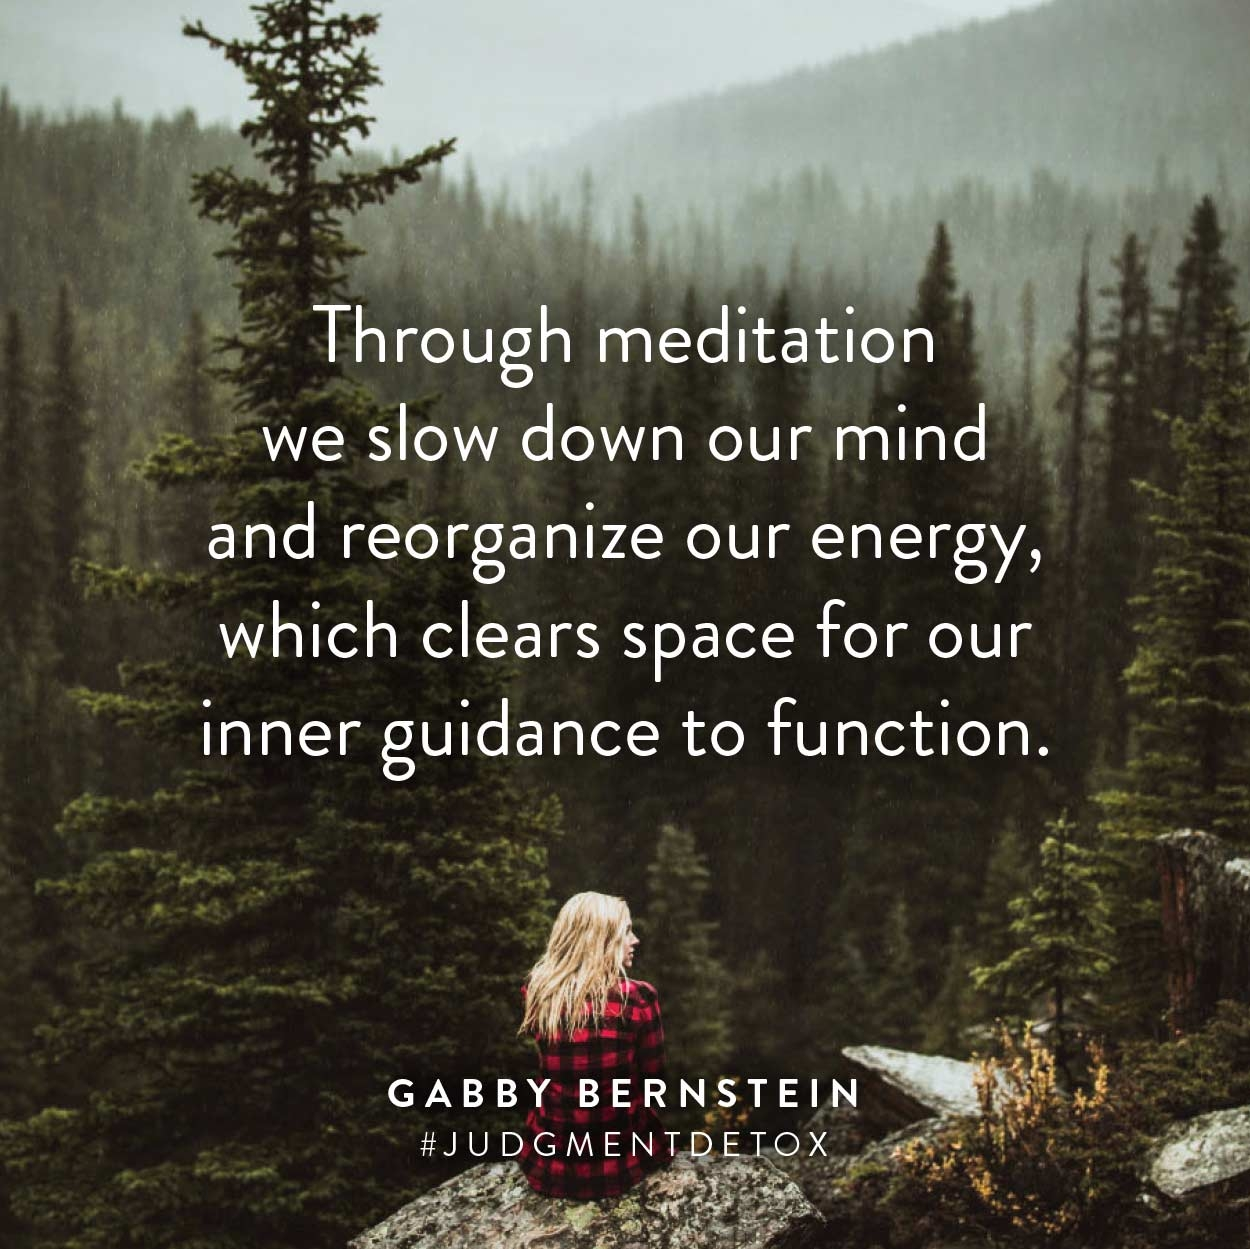 Through meditation we slow down our mind and reorganize our energy, which clears space for our inner guidance to function. | Gabby Bernstein quote from Judgment Detox